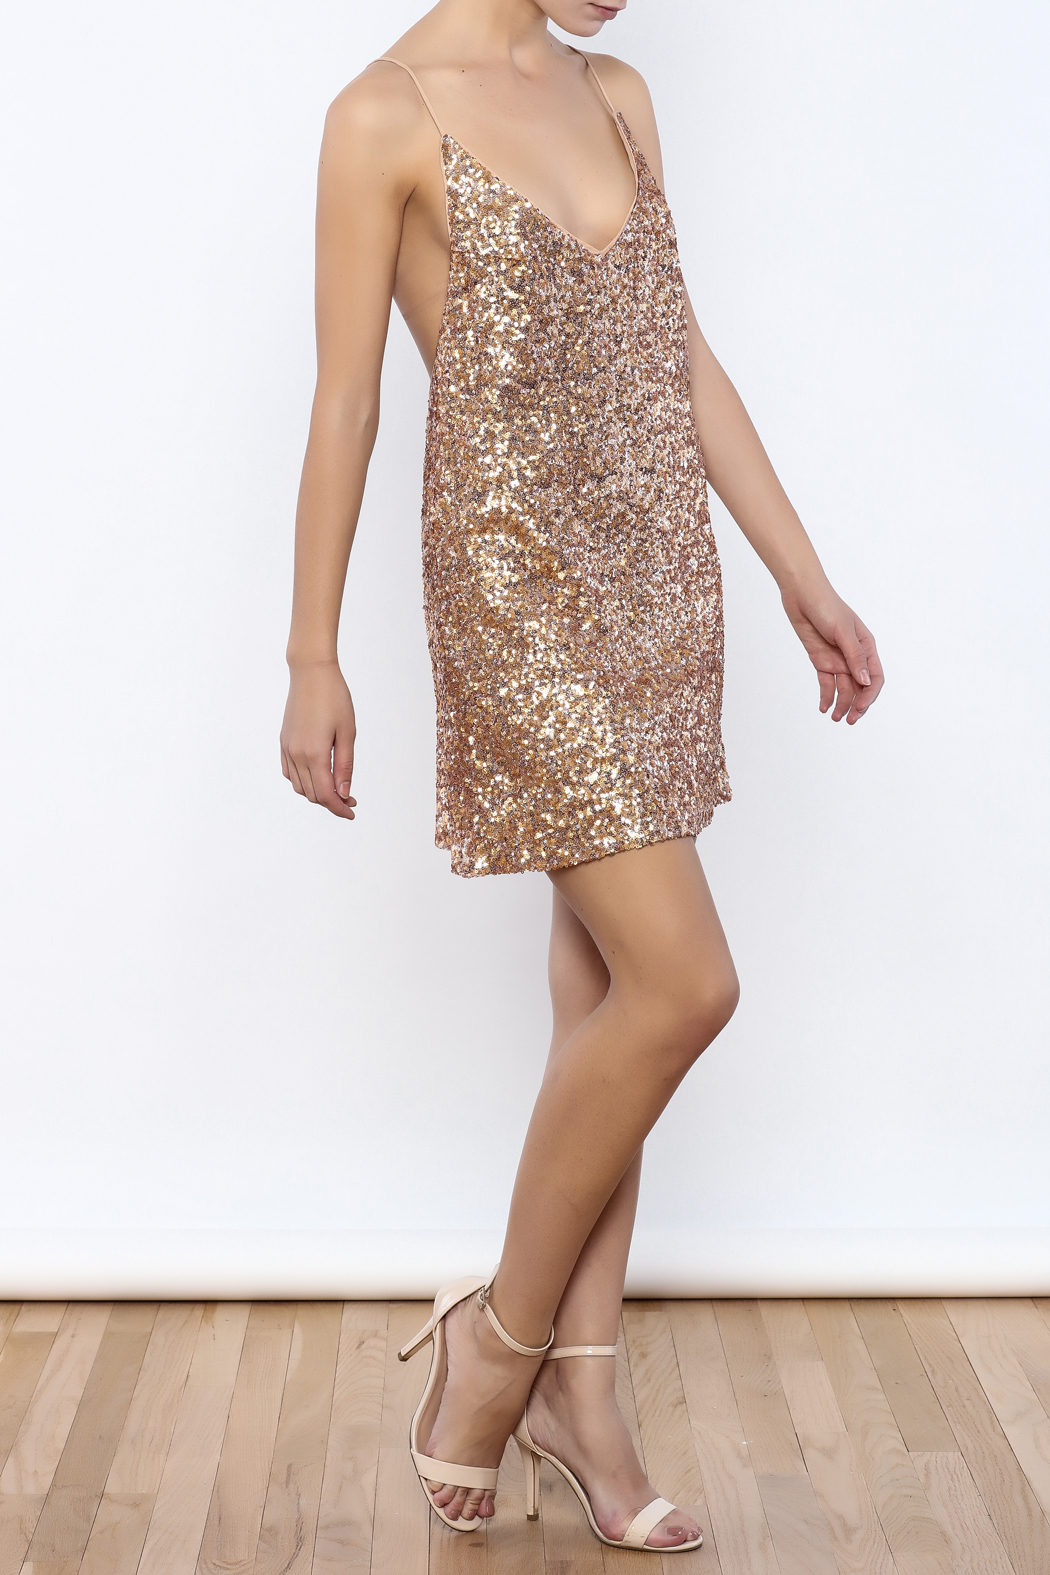 Honey Punch Sequin Dress From New York By Dor L Dor